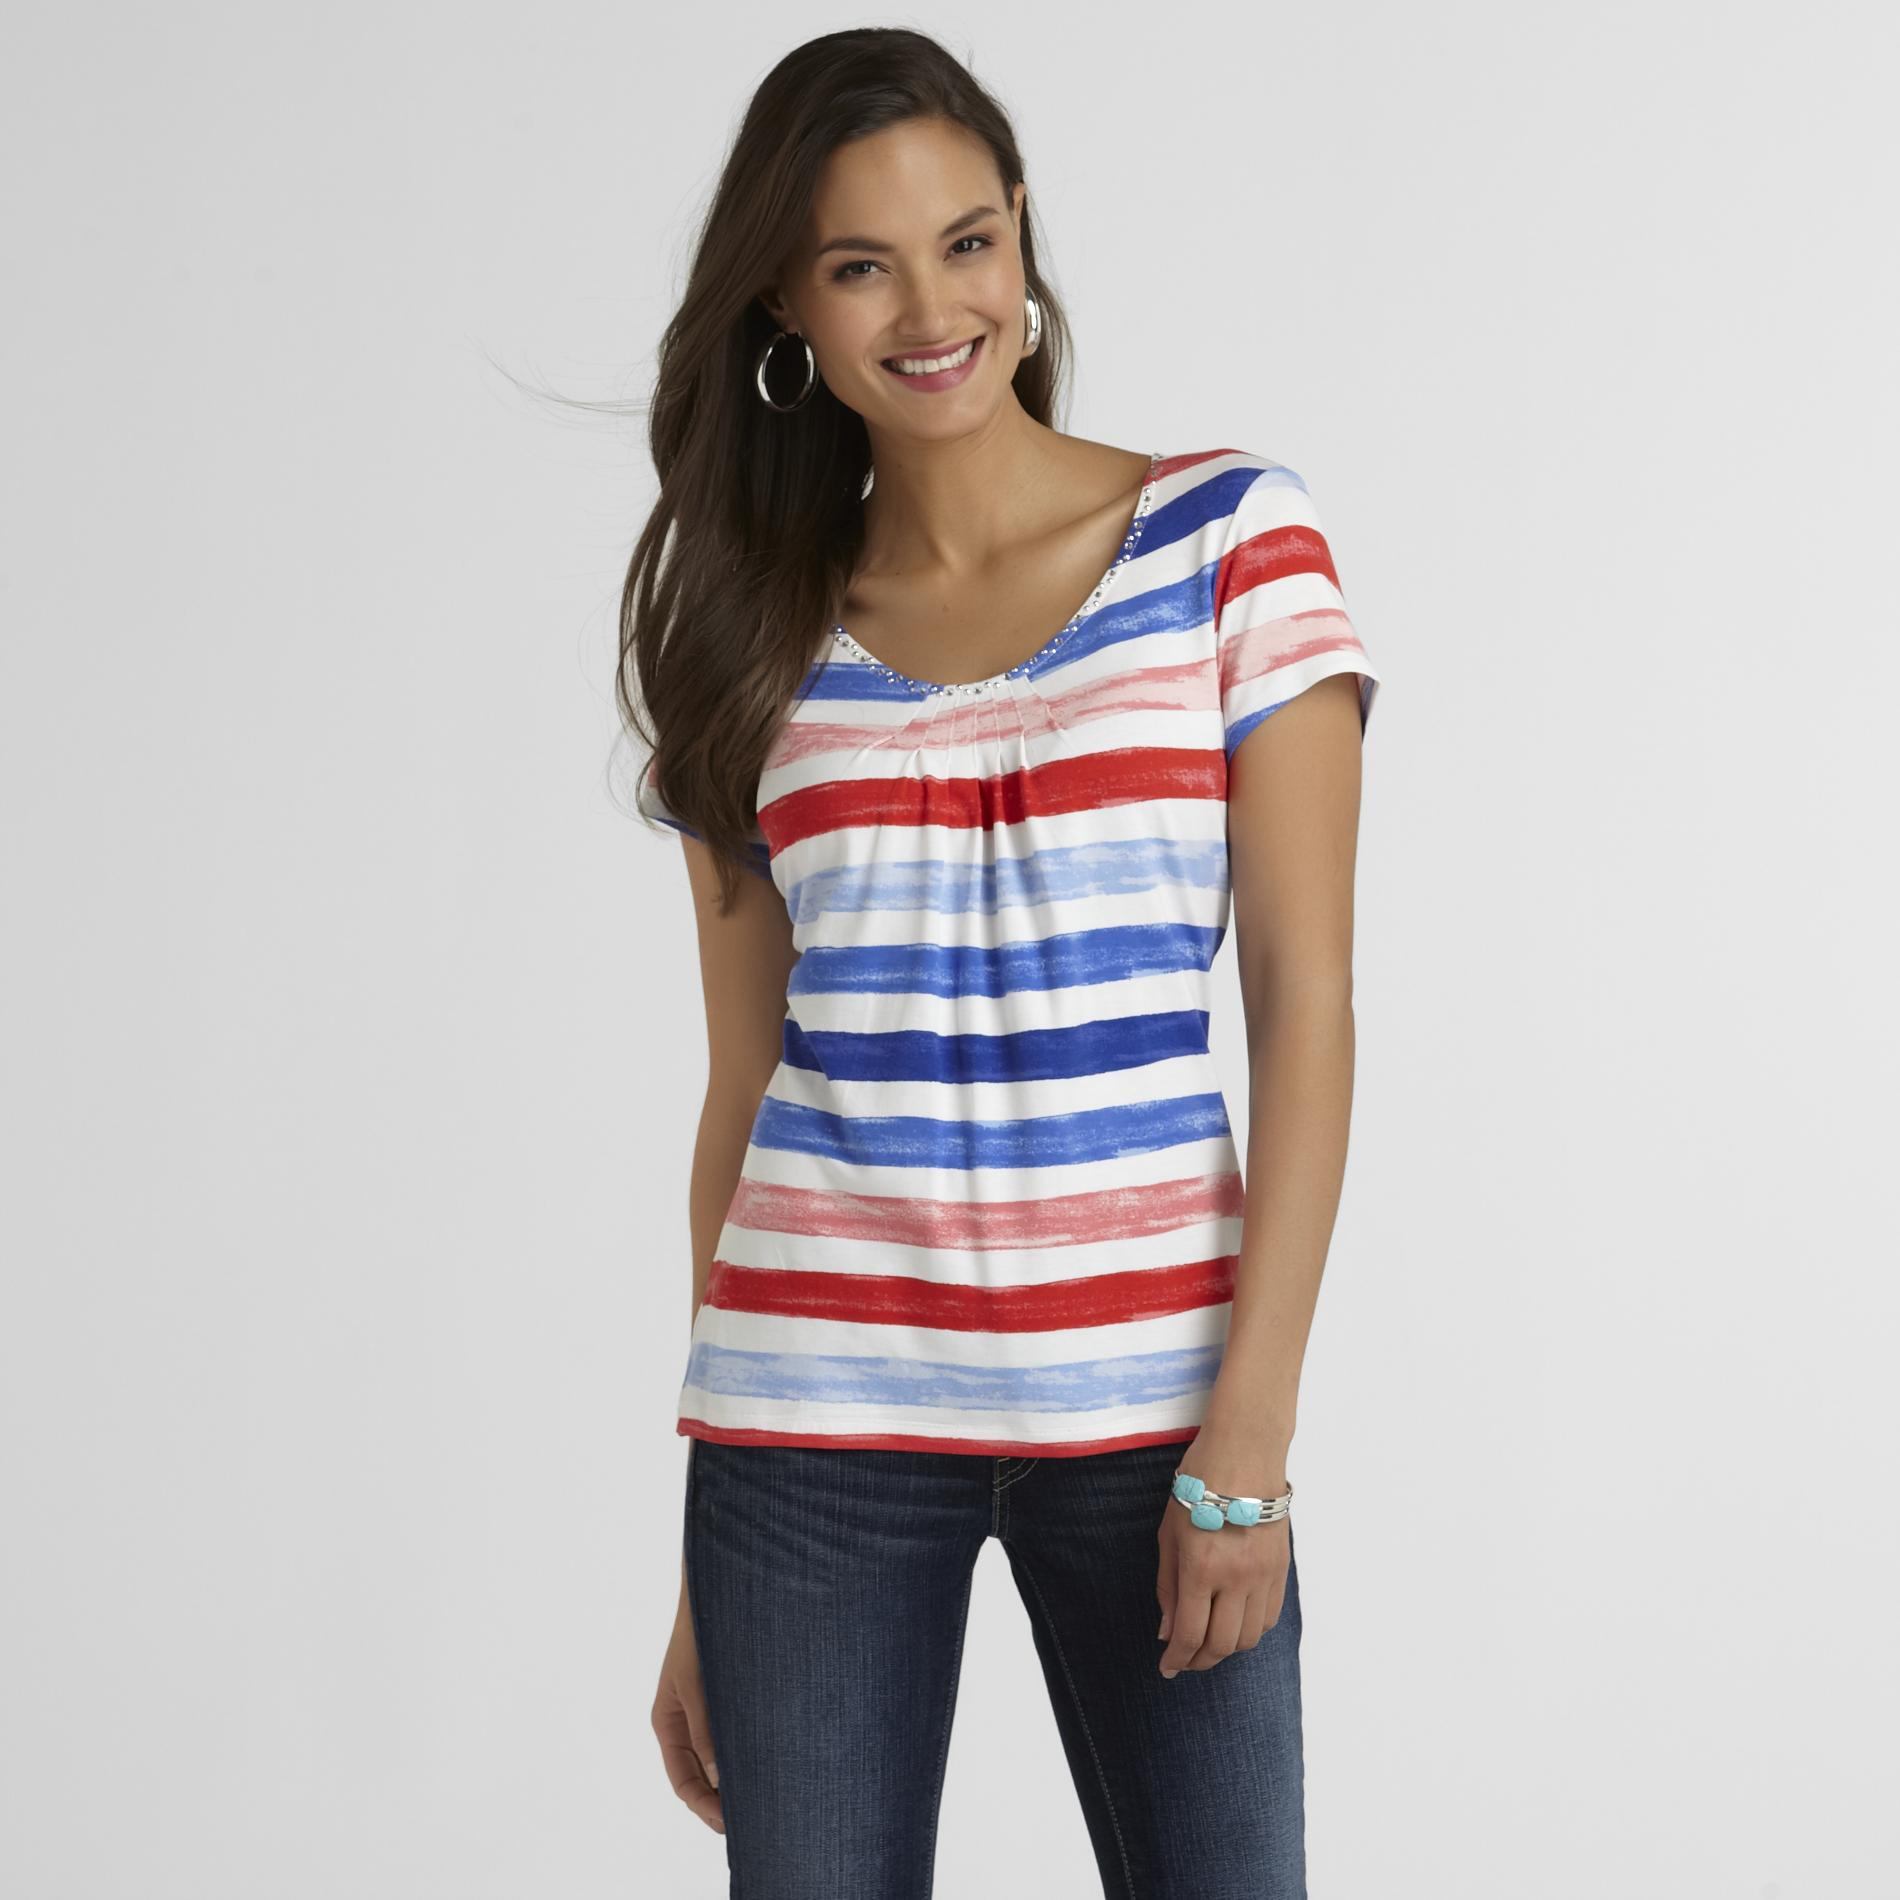 Sapphire Star Women's Embellished Top - Striped at Sears.com